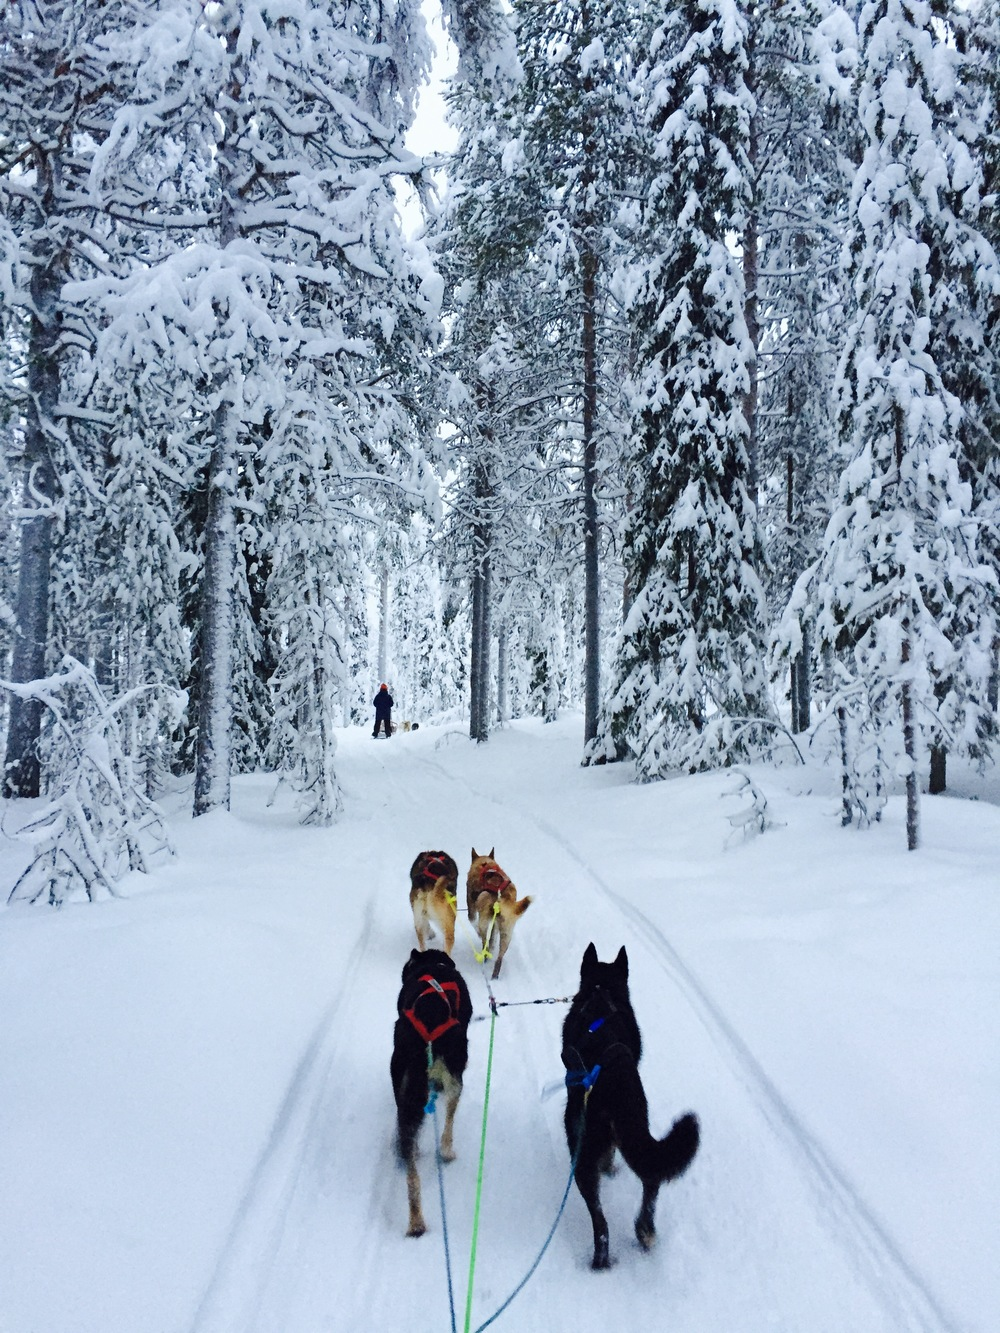 dogsledding in snowy taiga forest.jpeg